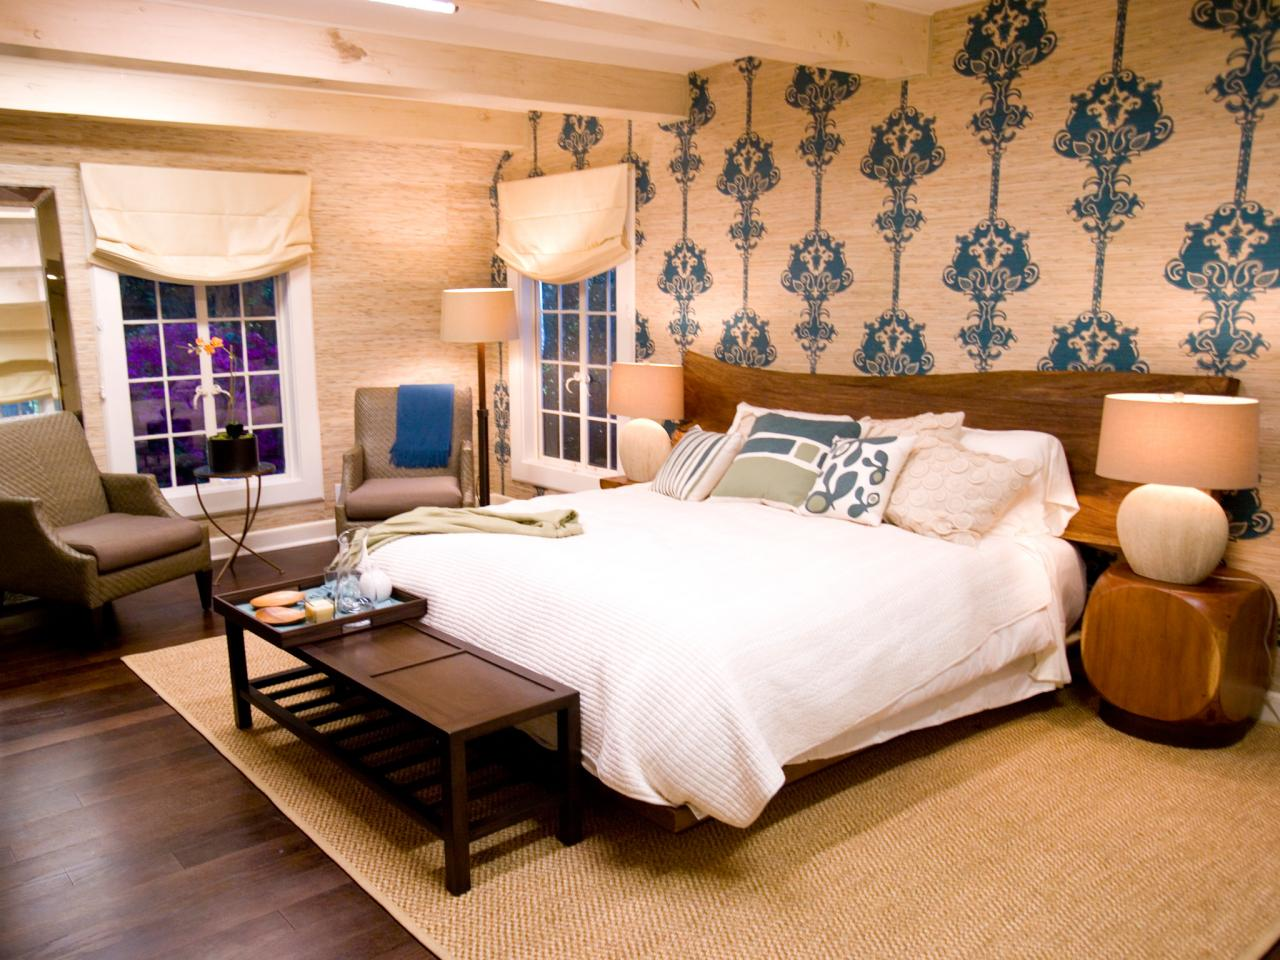 Best Bedroom Flooring Pictures, Options & Ideas  Hgtv